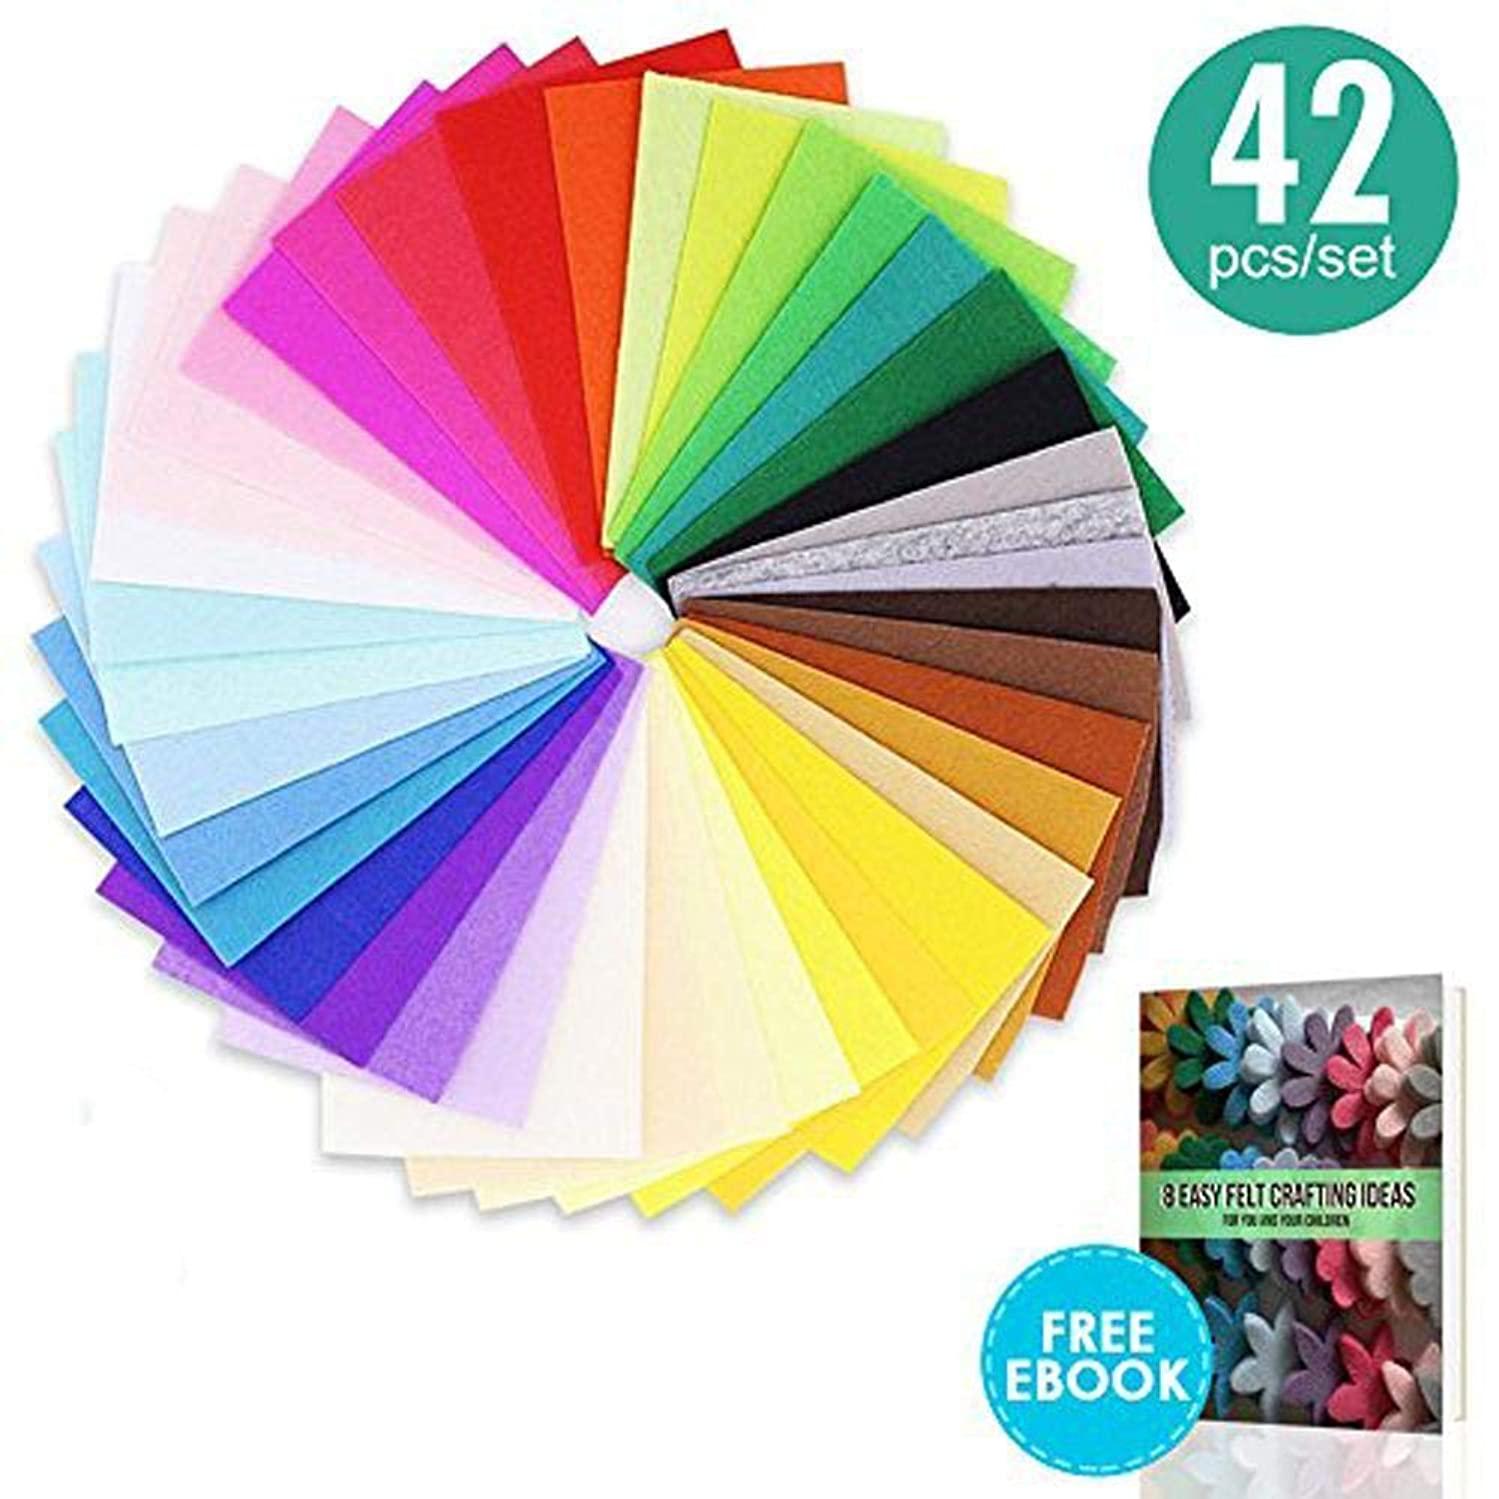 42 pcs 8x12 inch(20x30 cm) Craft Felt Sheets,Assorted Color 1mm Thick Felt Fabric Squares, Nonwoven Fabric Sheet Pack for DIY Craft Patchworks Sewing with Easy Felt Crafting Ideas Ebook